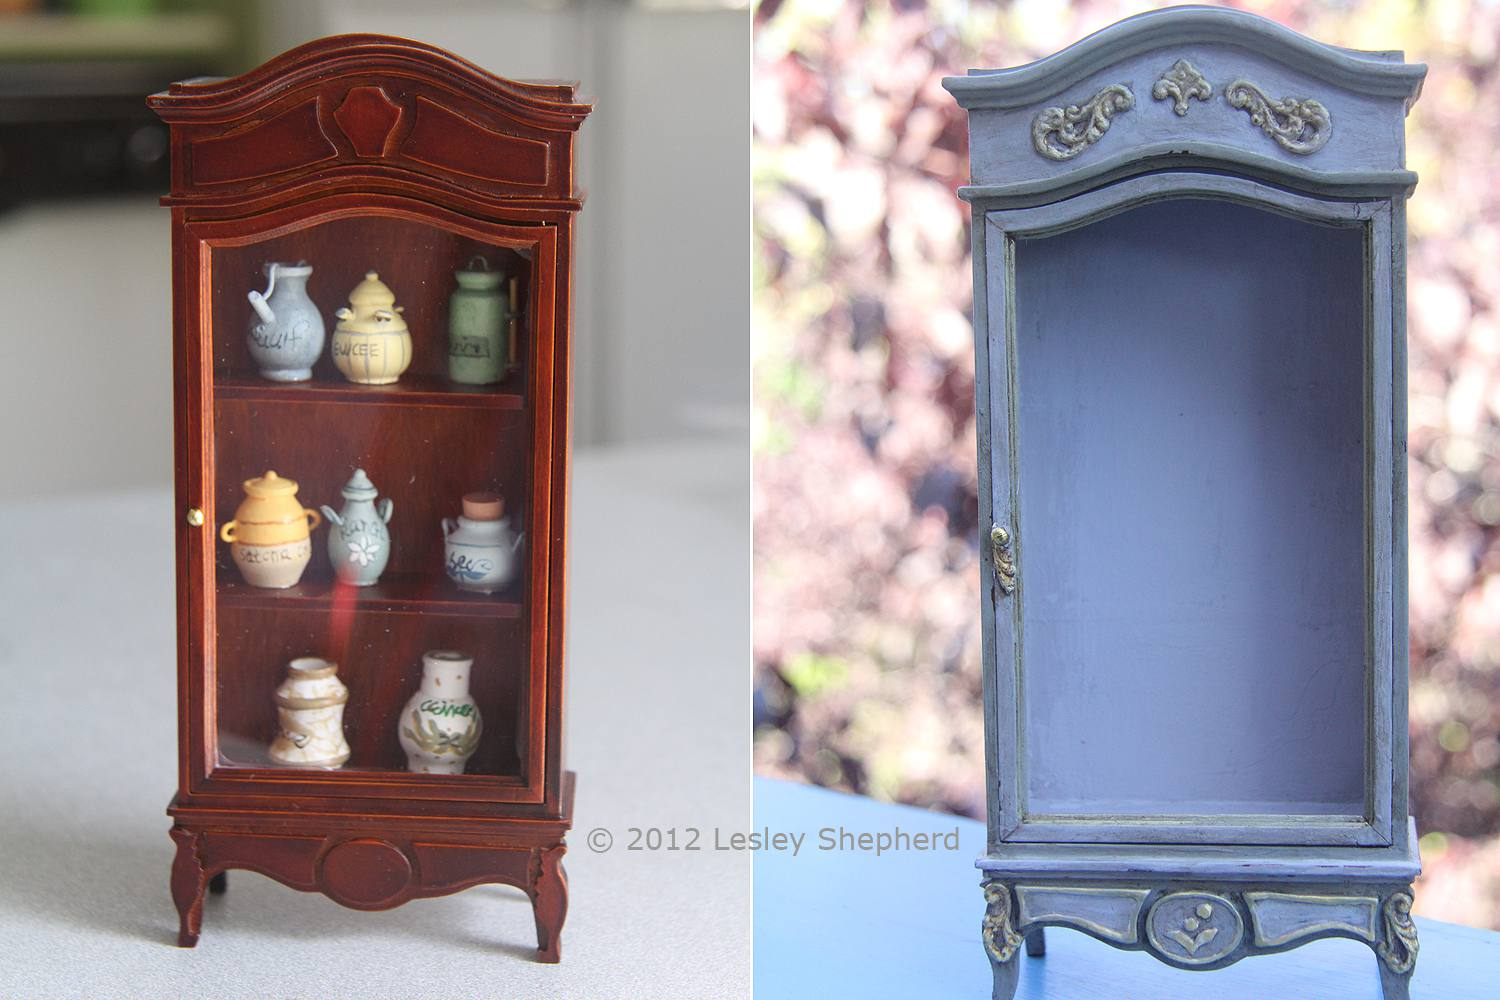 Learn How To Rework Simple Dollhouse Furniture Sheet Detailing Layout Of Electrical Wiring And Lamps In A Dolls House